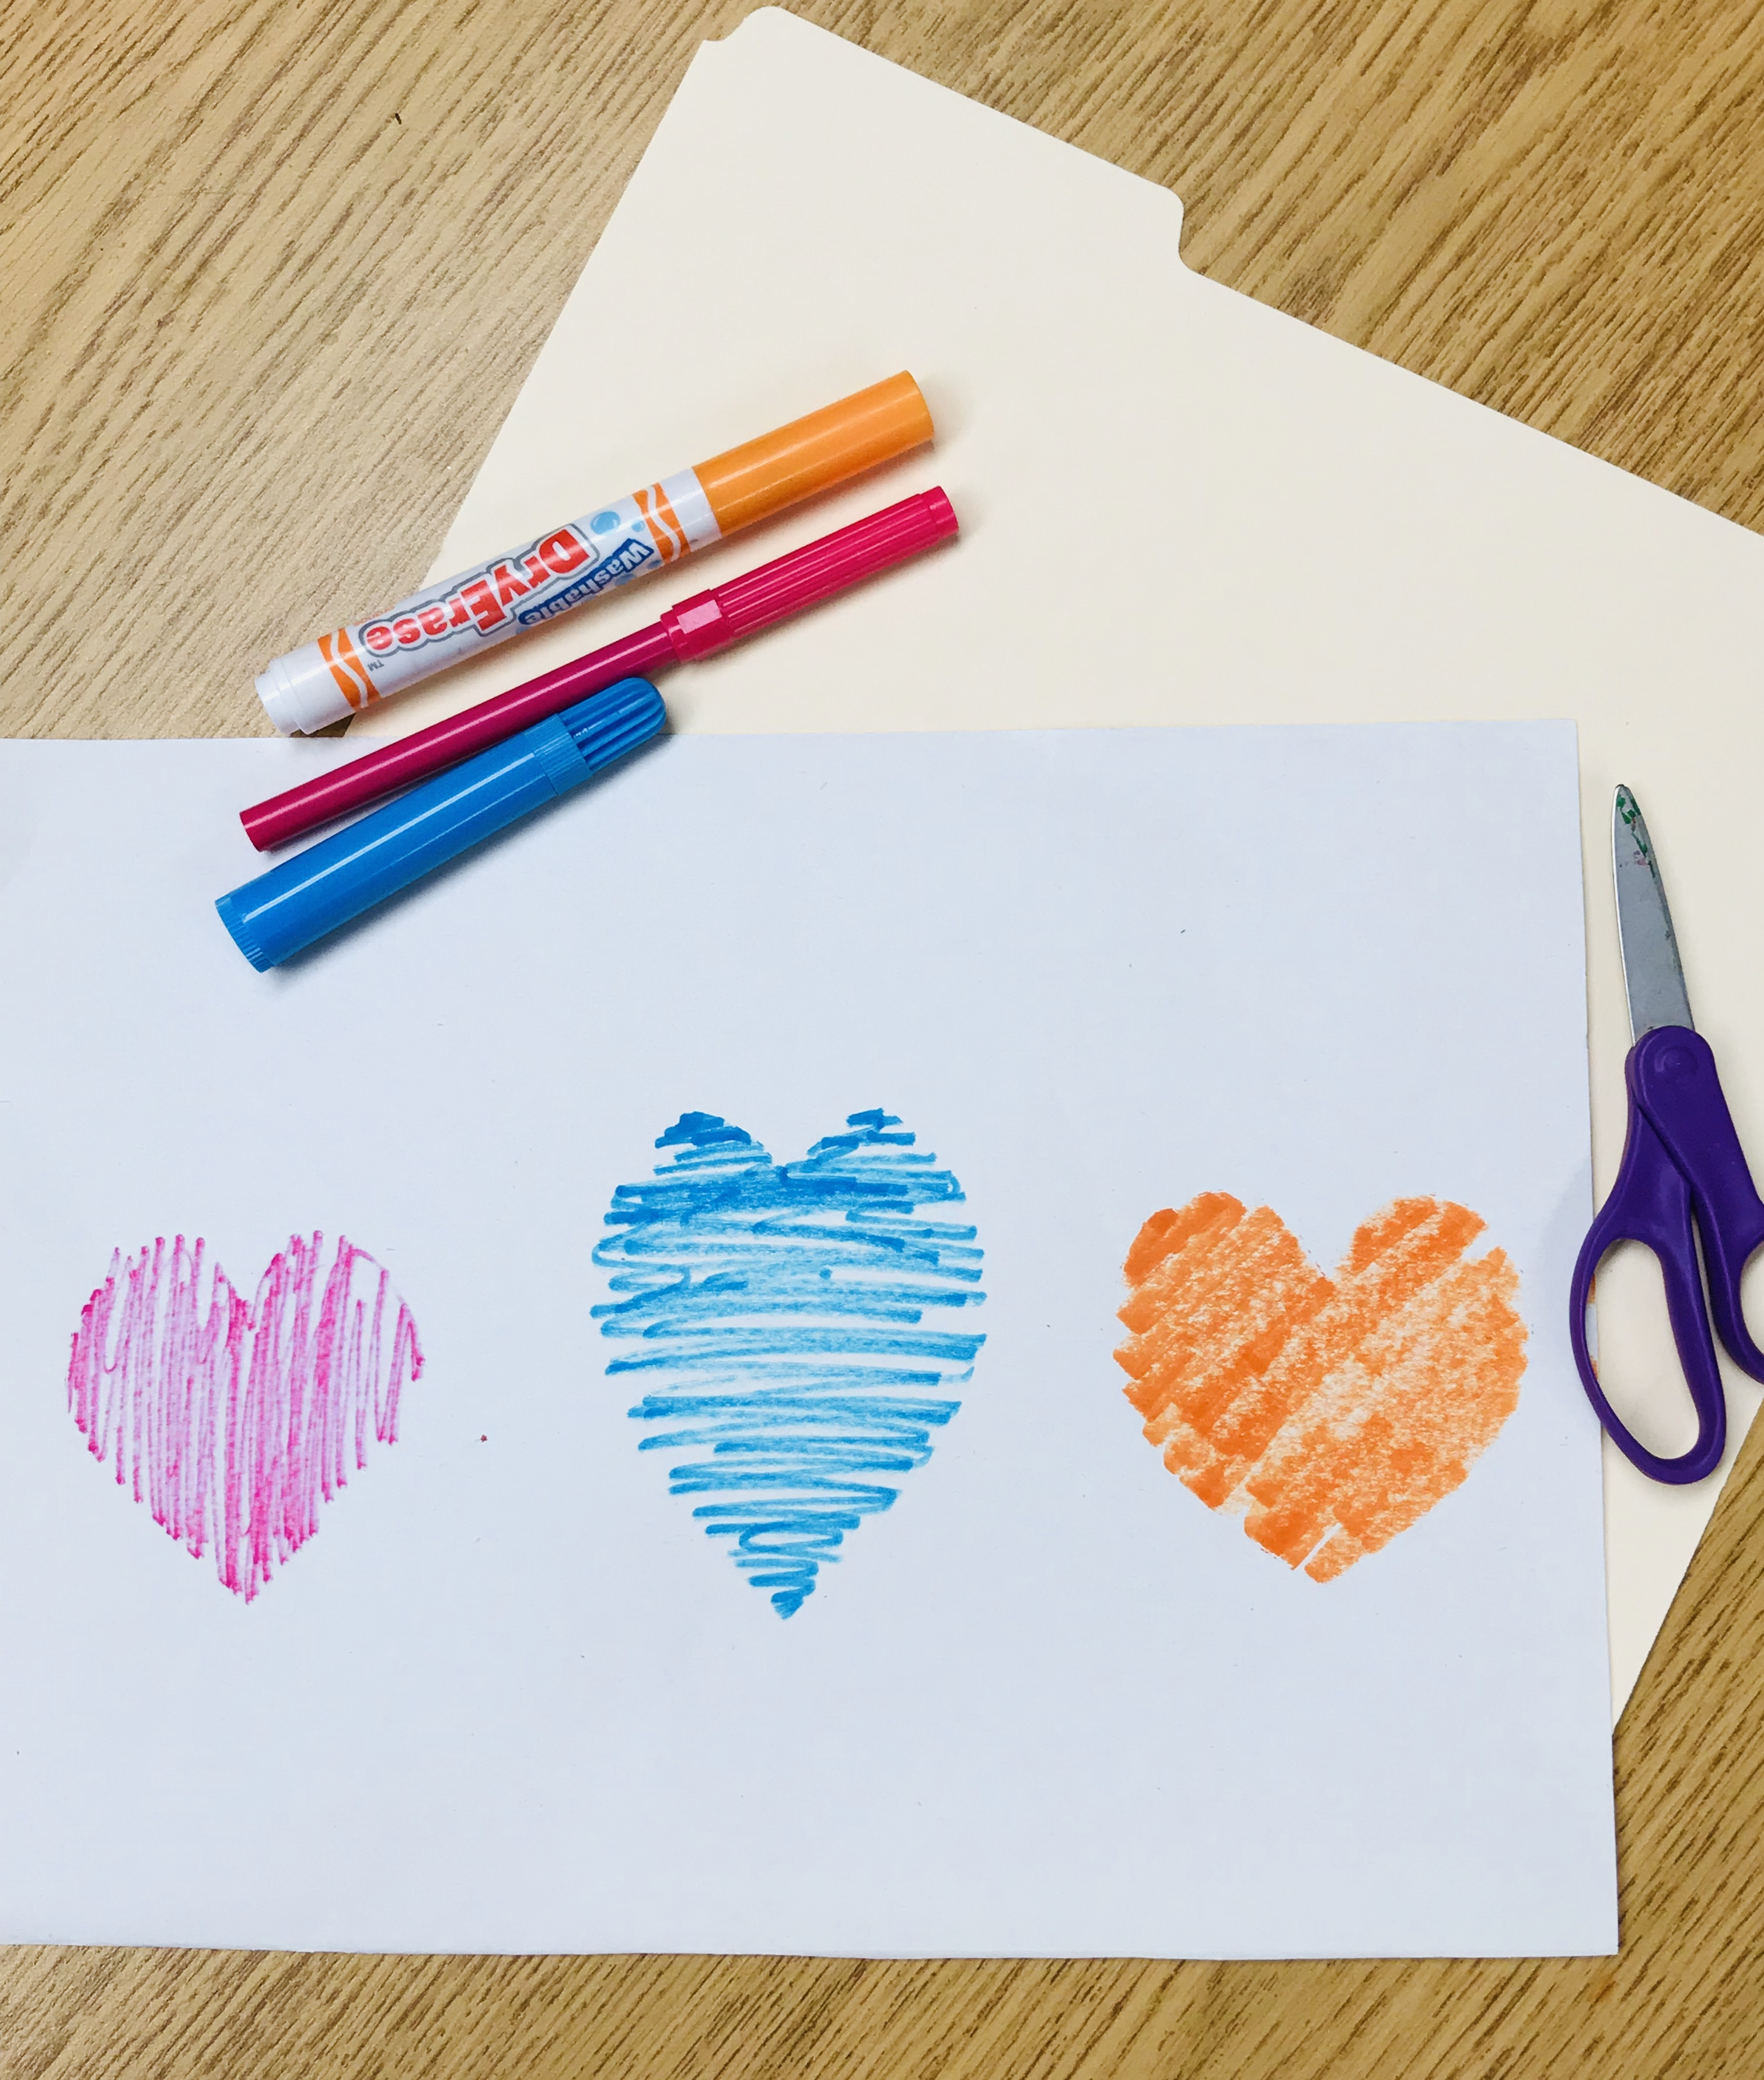 Markers and drawn hearts